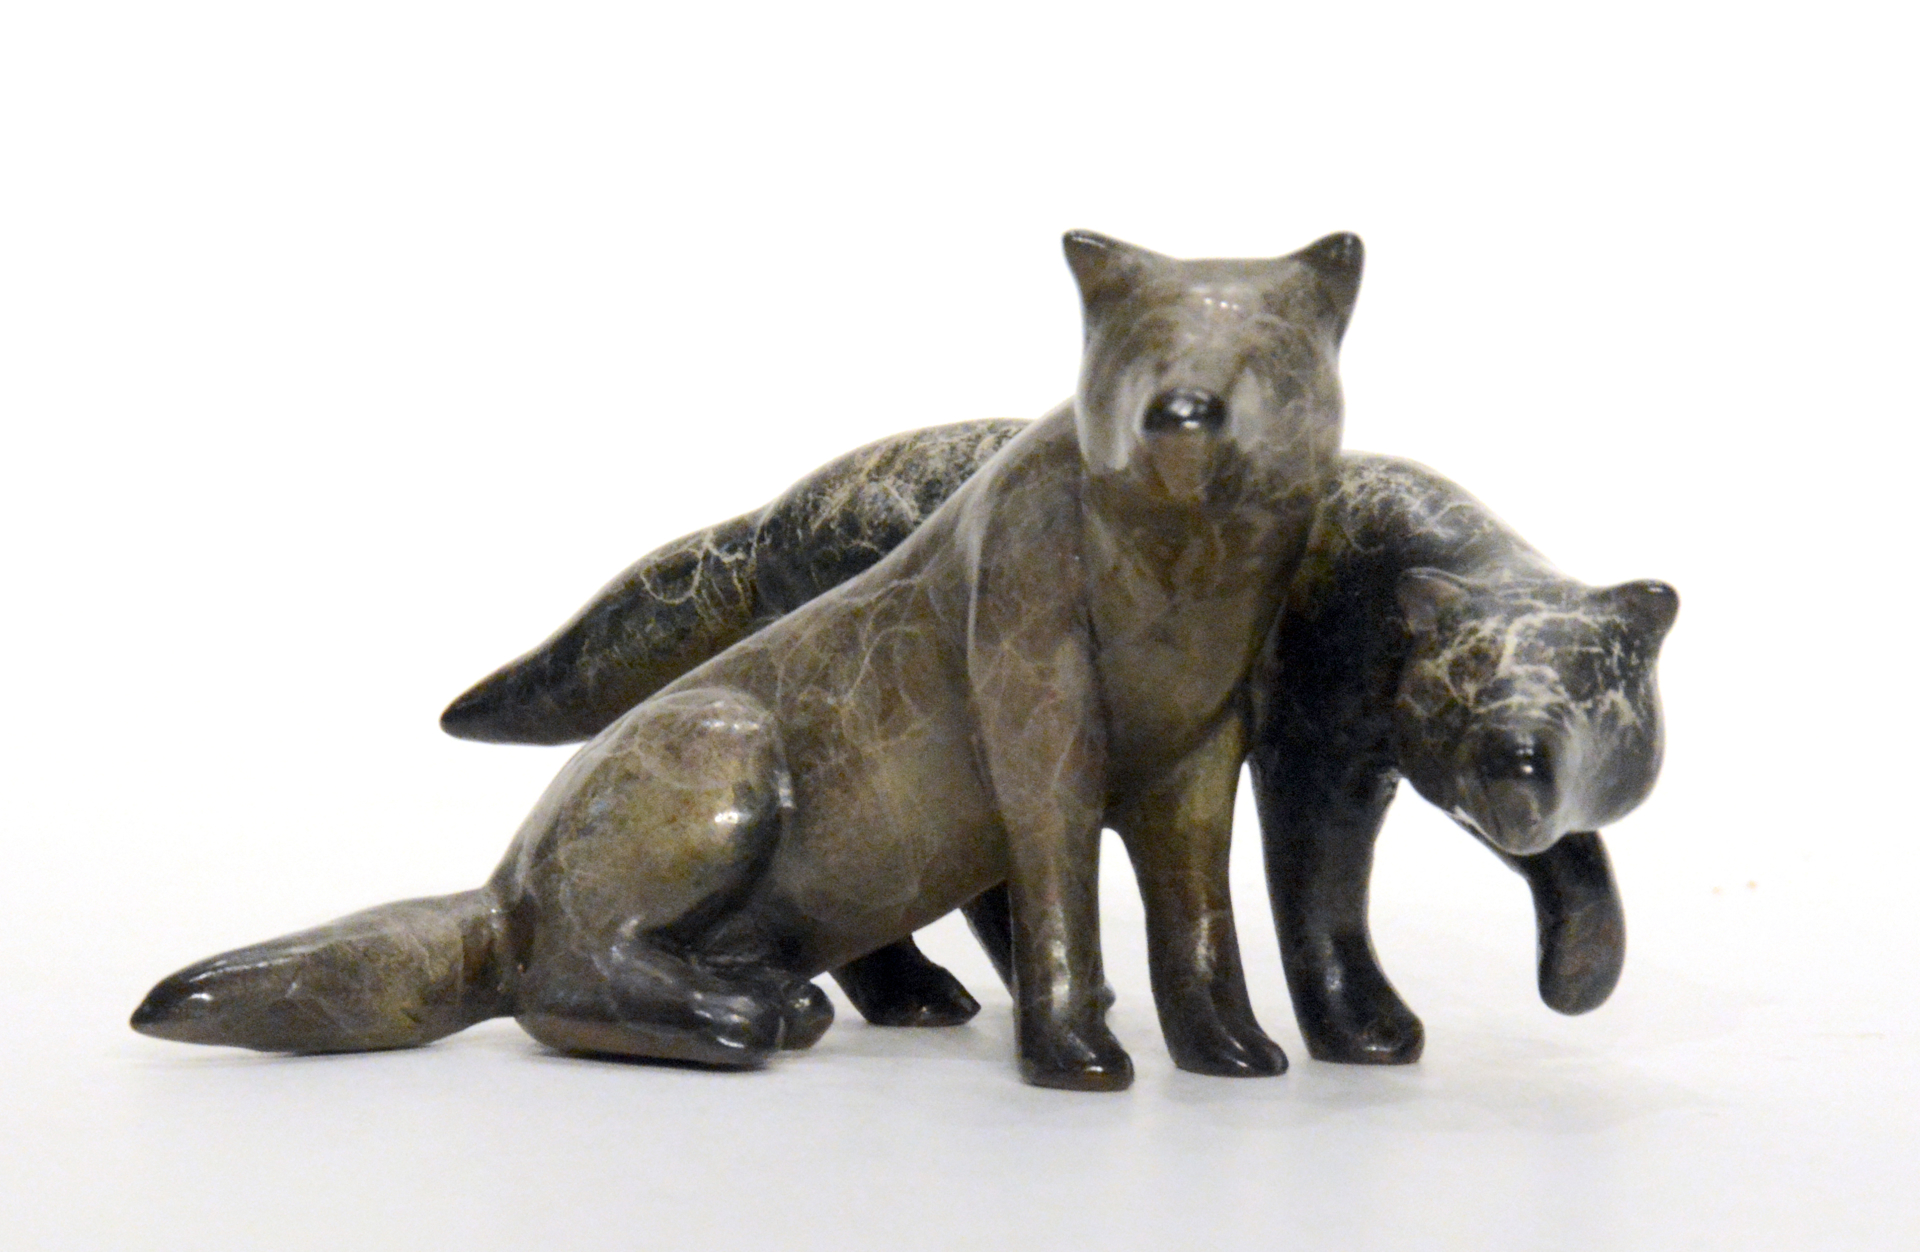 Date Night (Wolves) by Eric Wilcox